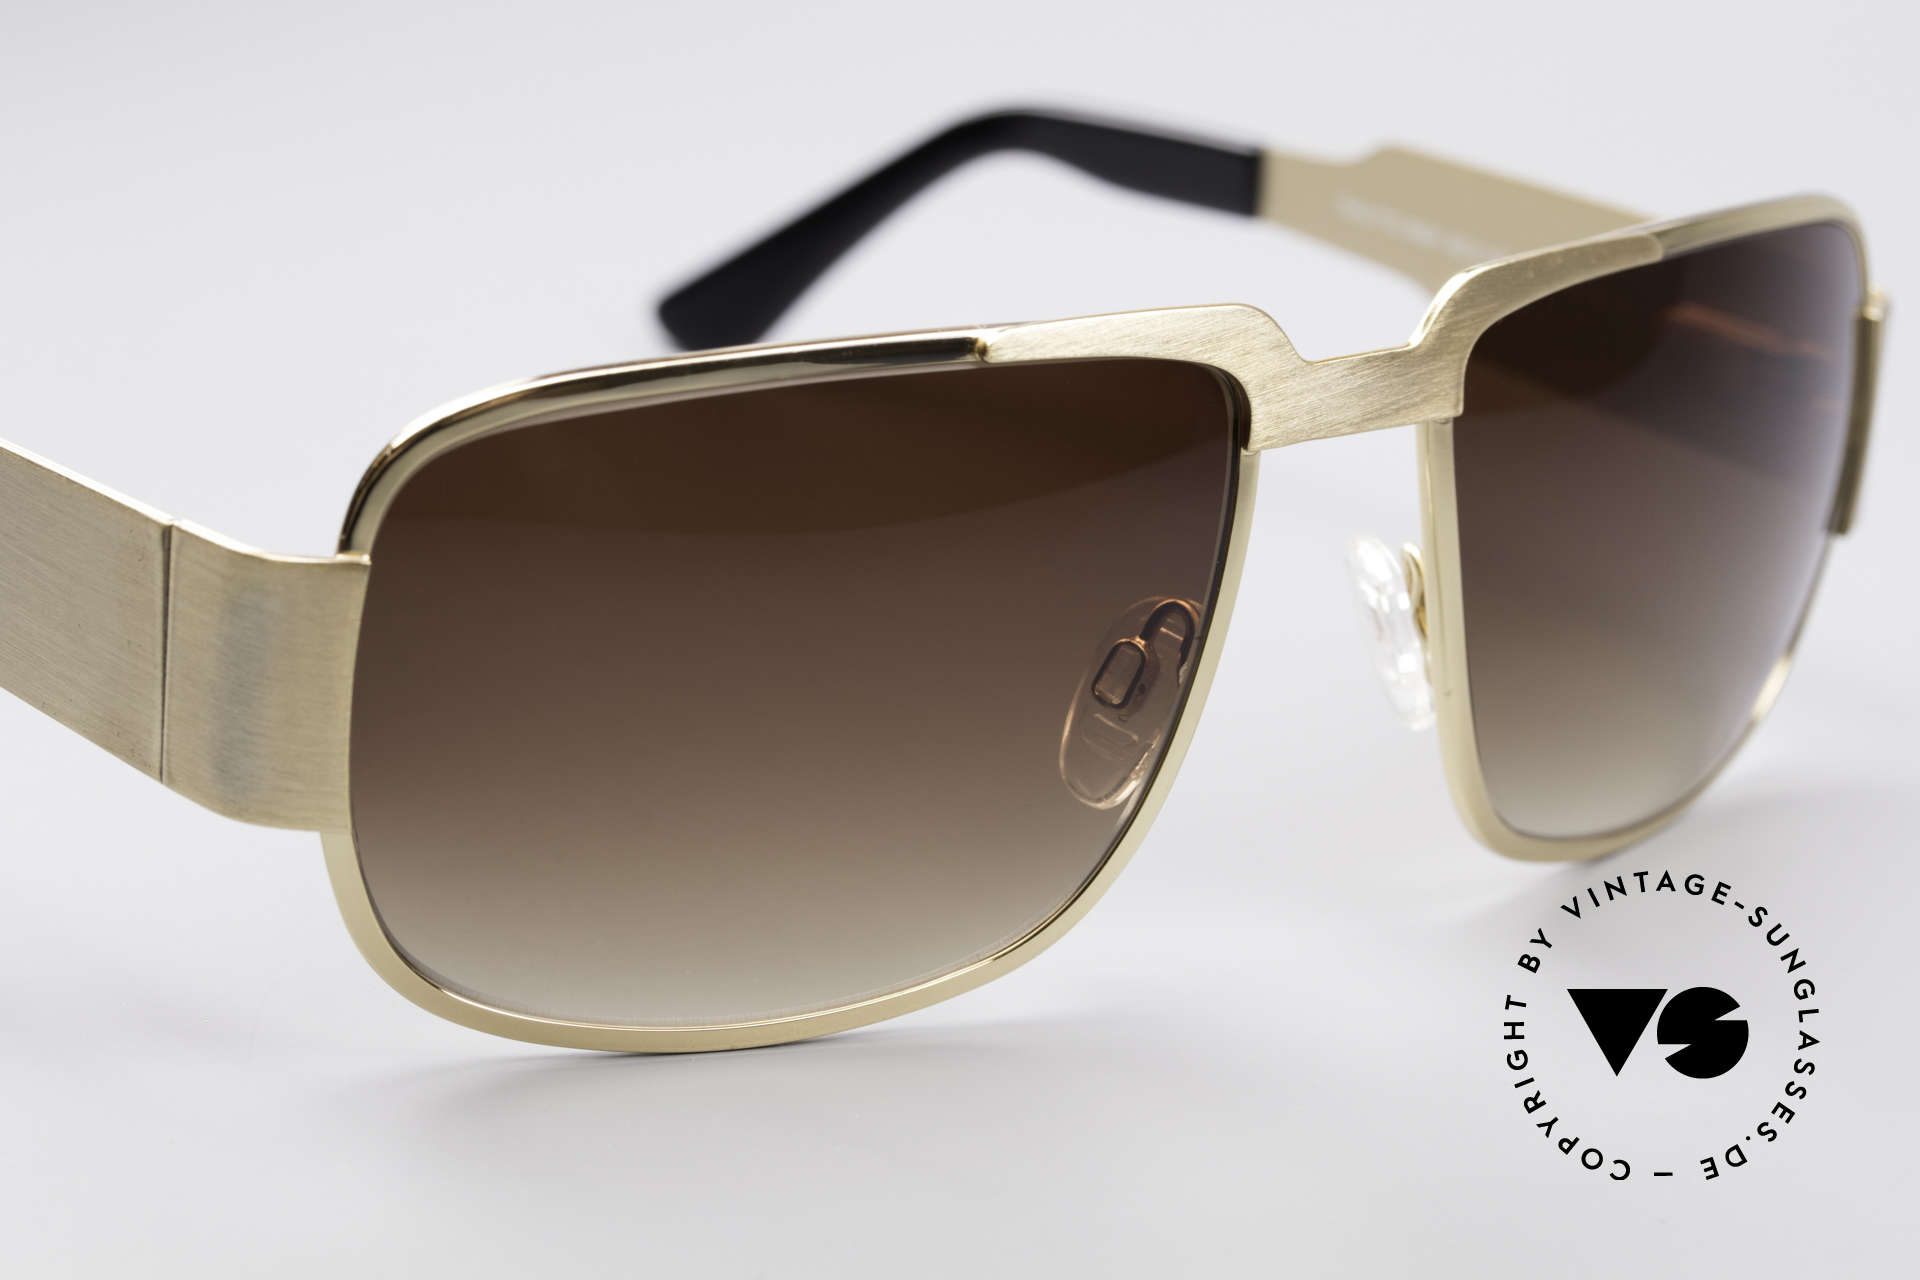 Neostyle Nautic 2 Elvis Presley Sunglasses, 54g heavy and 145mm frame width: distinctive XXL shades, Made for Men